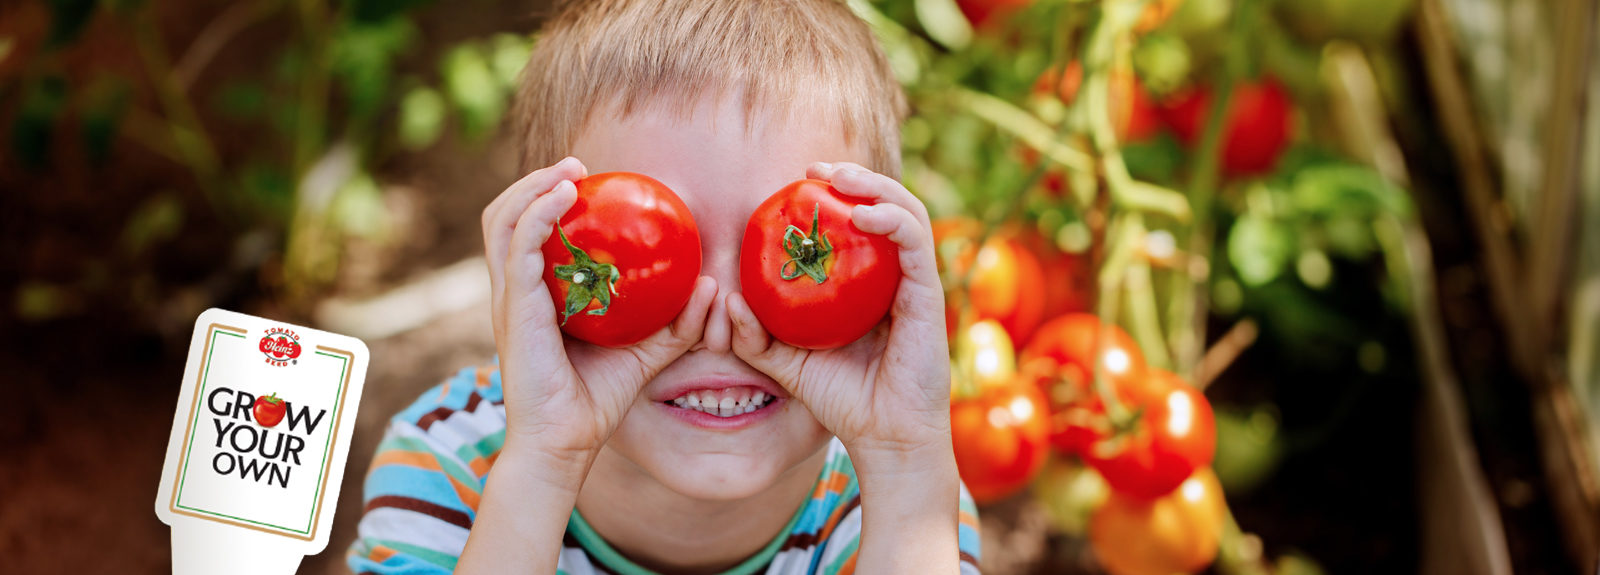 Young Boy infront of tomato vines holding two tomatoes in front of his eyes